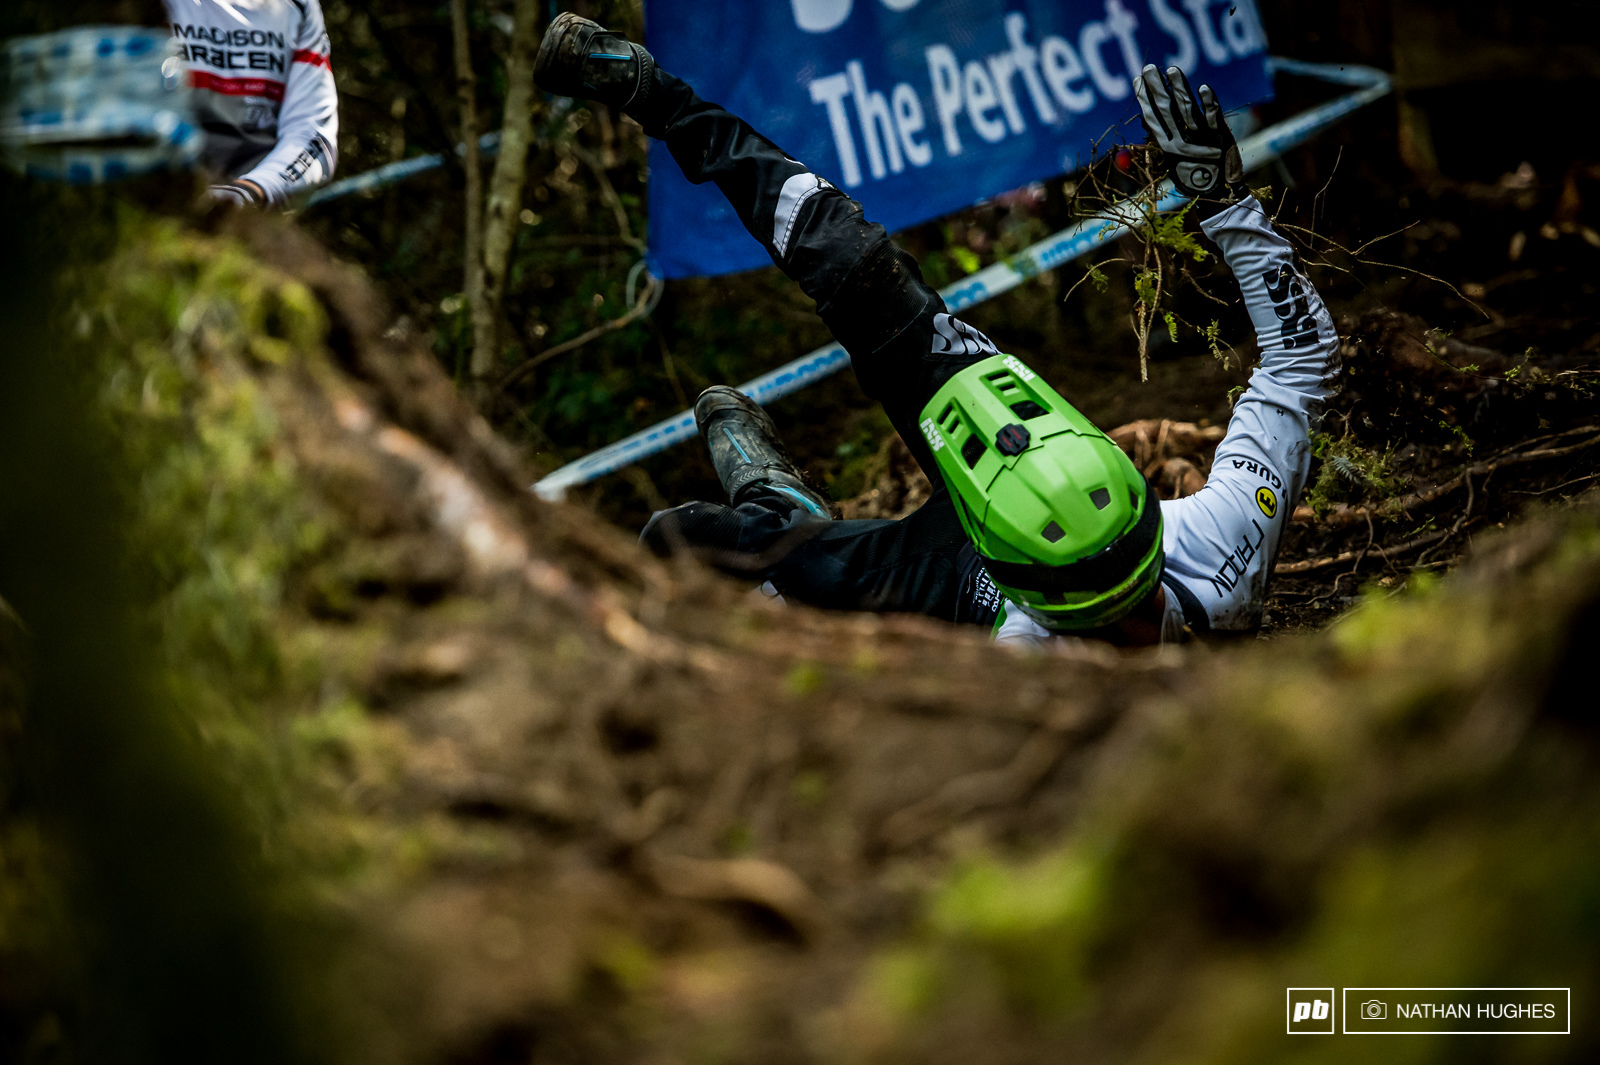 All kinds of riders hit the mossy deck in the new woods today no matter how low the number plate or how sharp the tech skills.